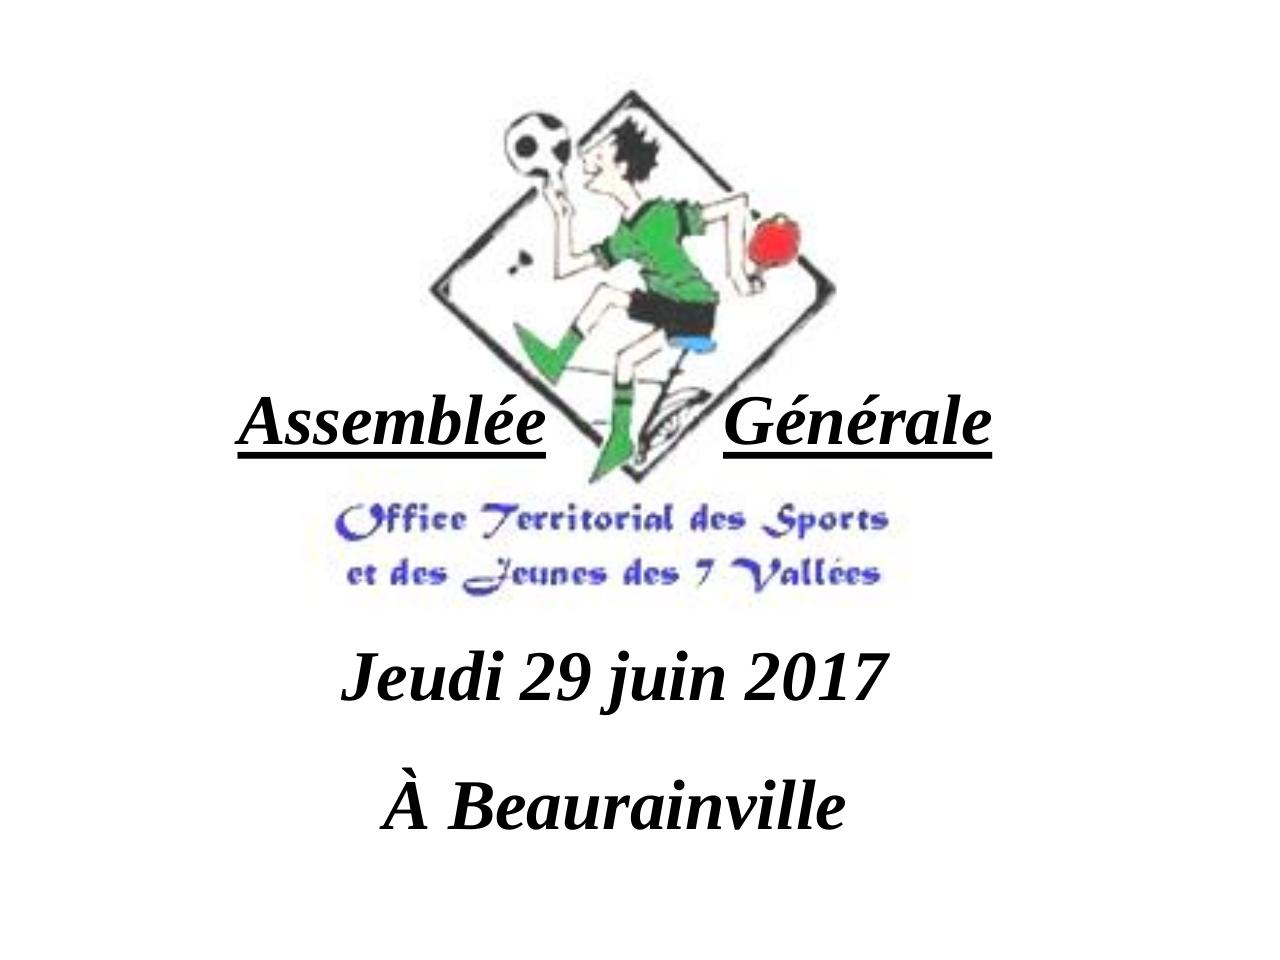 Office Territorial des Sports AG 23 juin 2016 finale.pdf - page 1/42